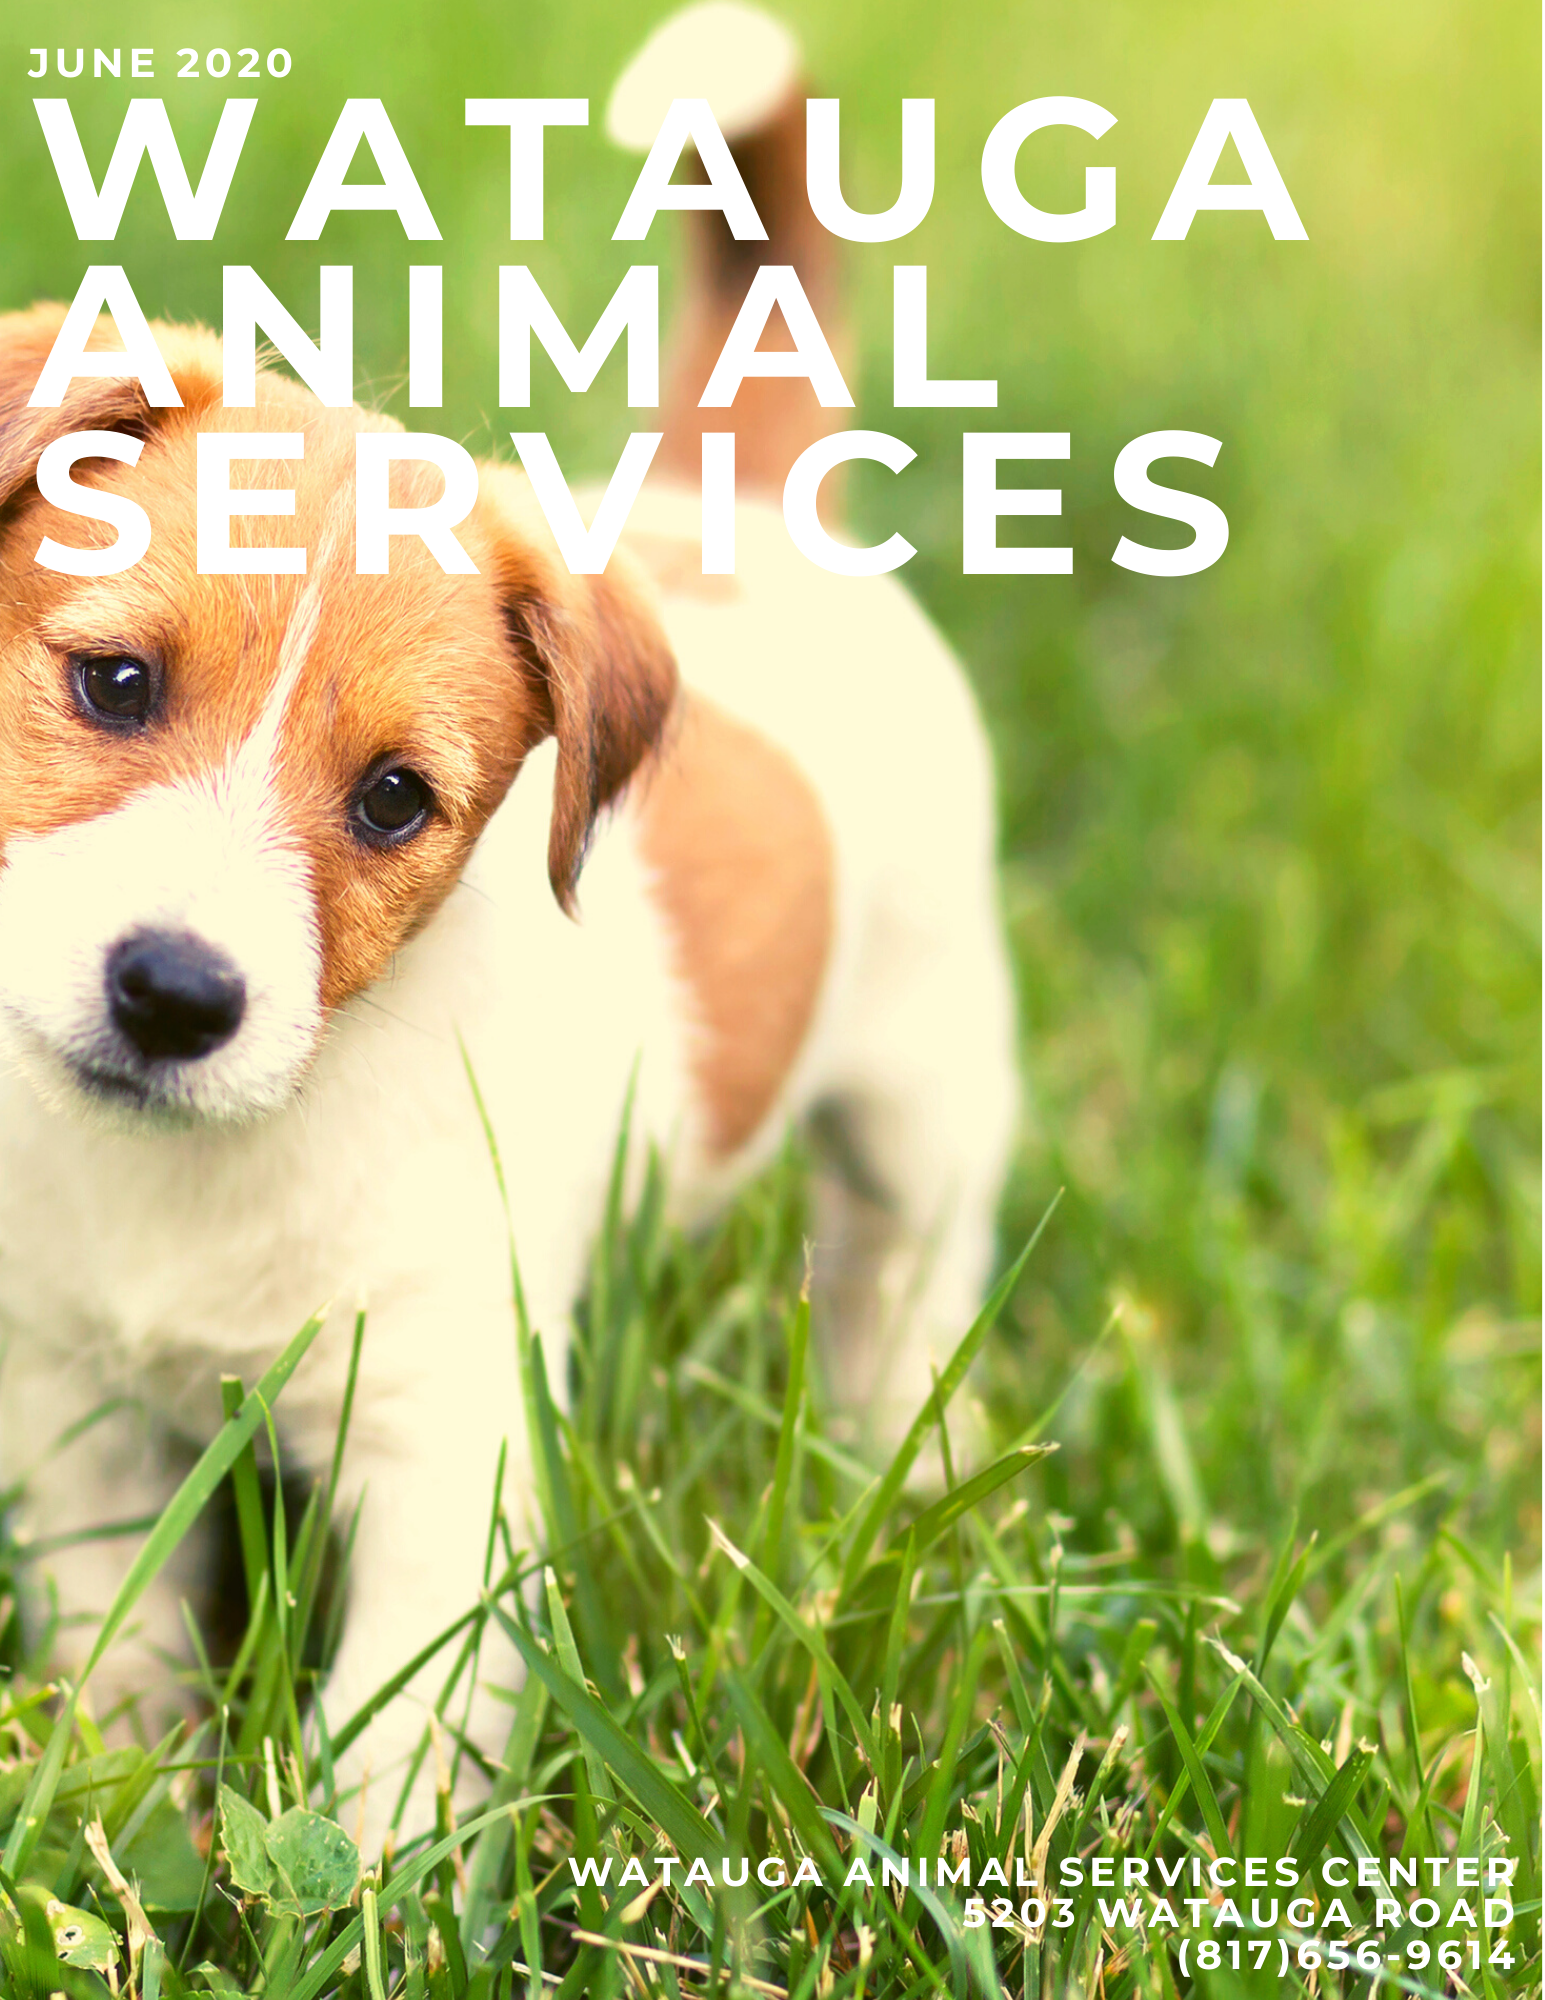 watauga animal services (56)